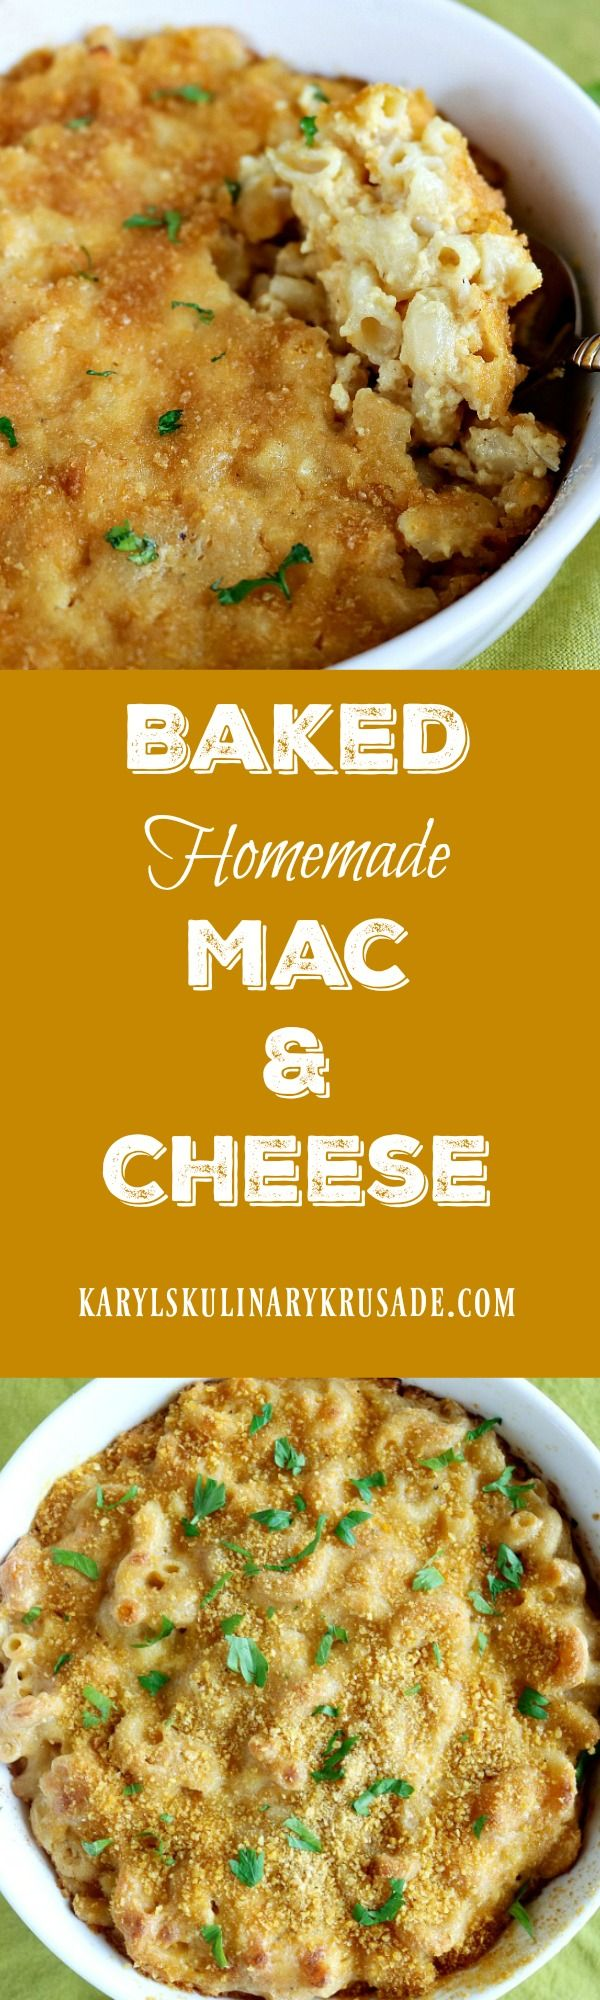 Baked Homemade Mac and Cheese...it's the definition of comfort food! Elbow pasta and creamy cheese sauce combined and baked to golden perfection. This will be a recipe your family will request over and over again.